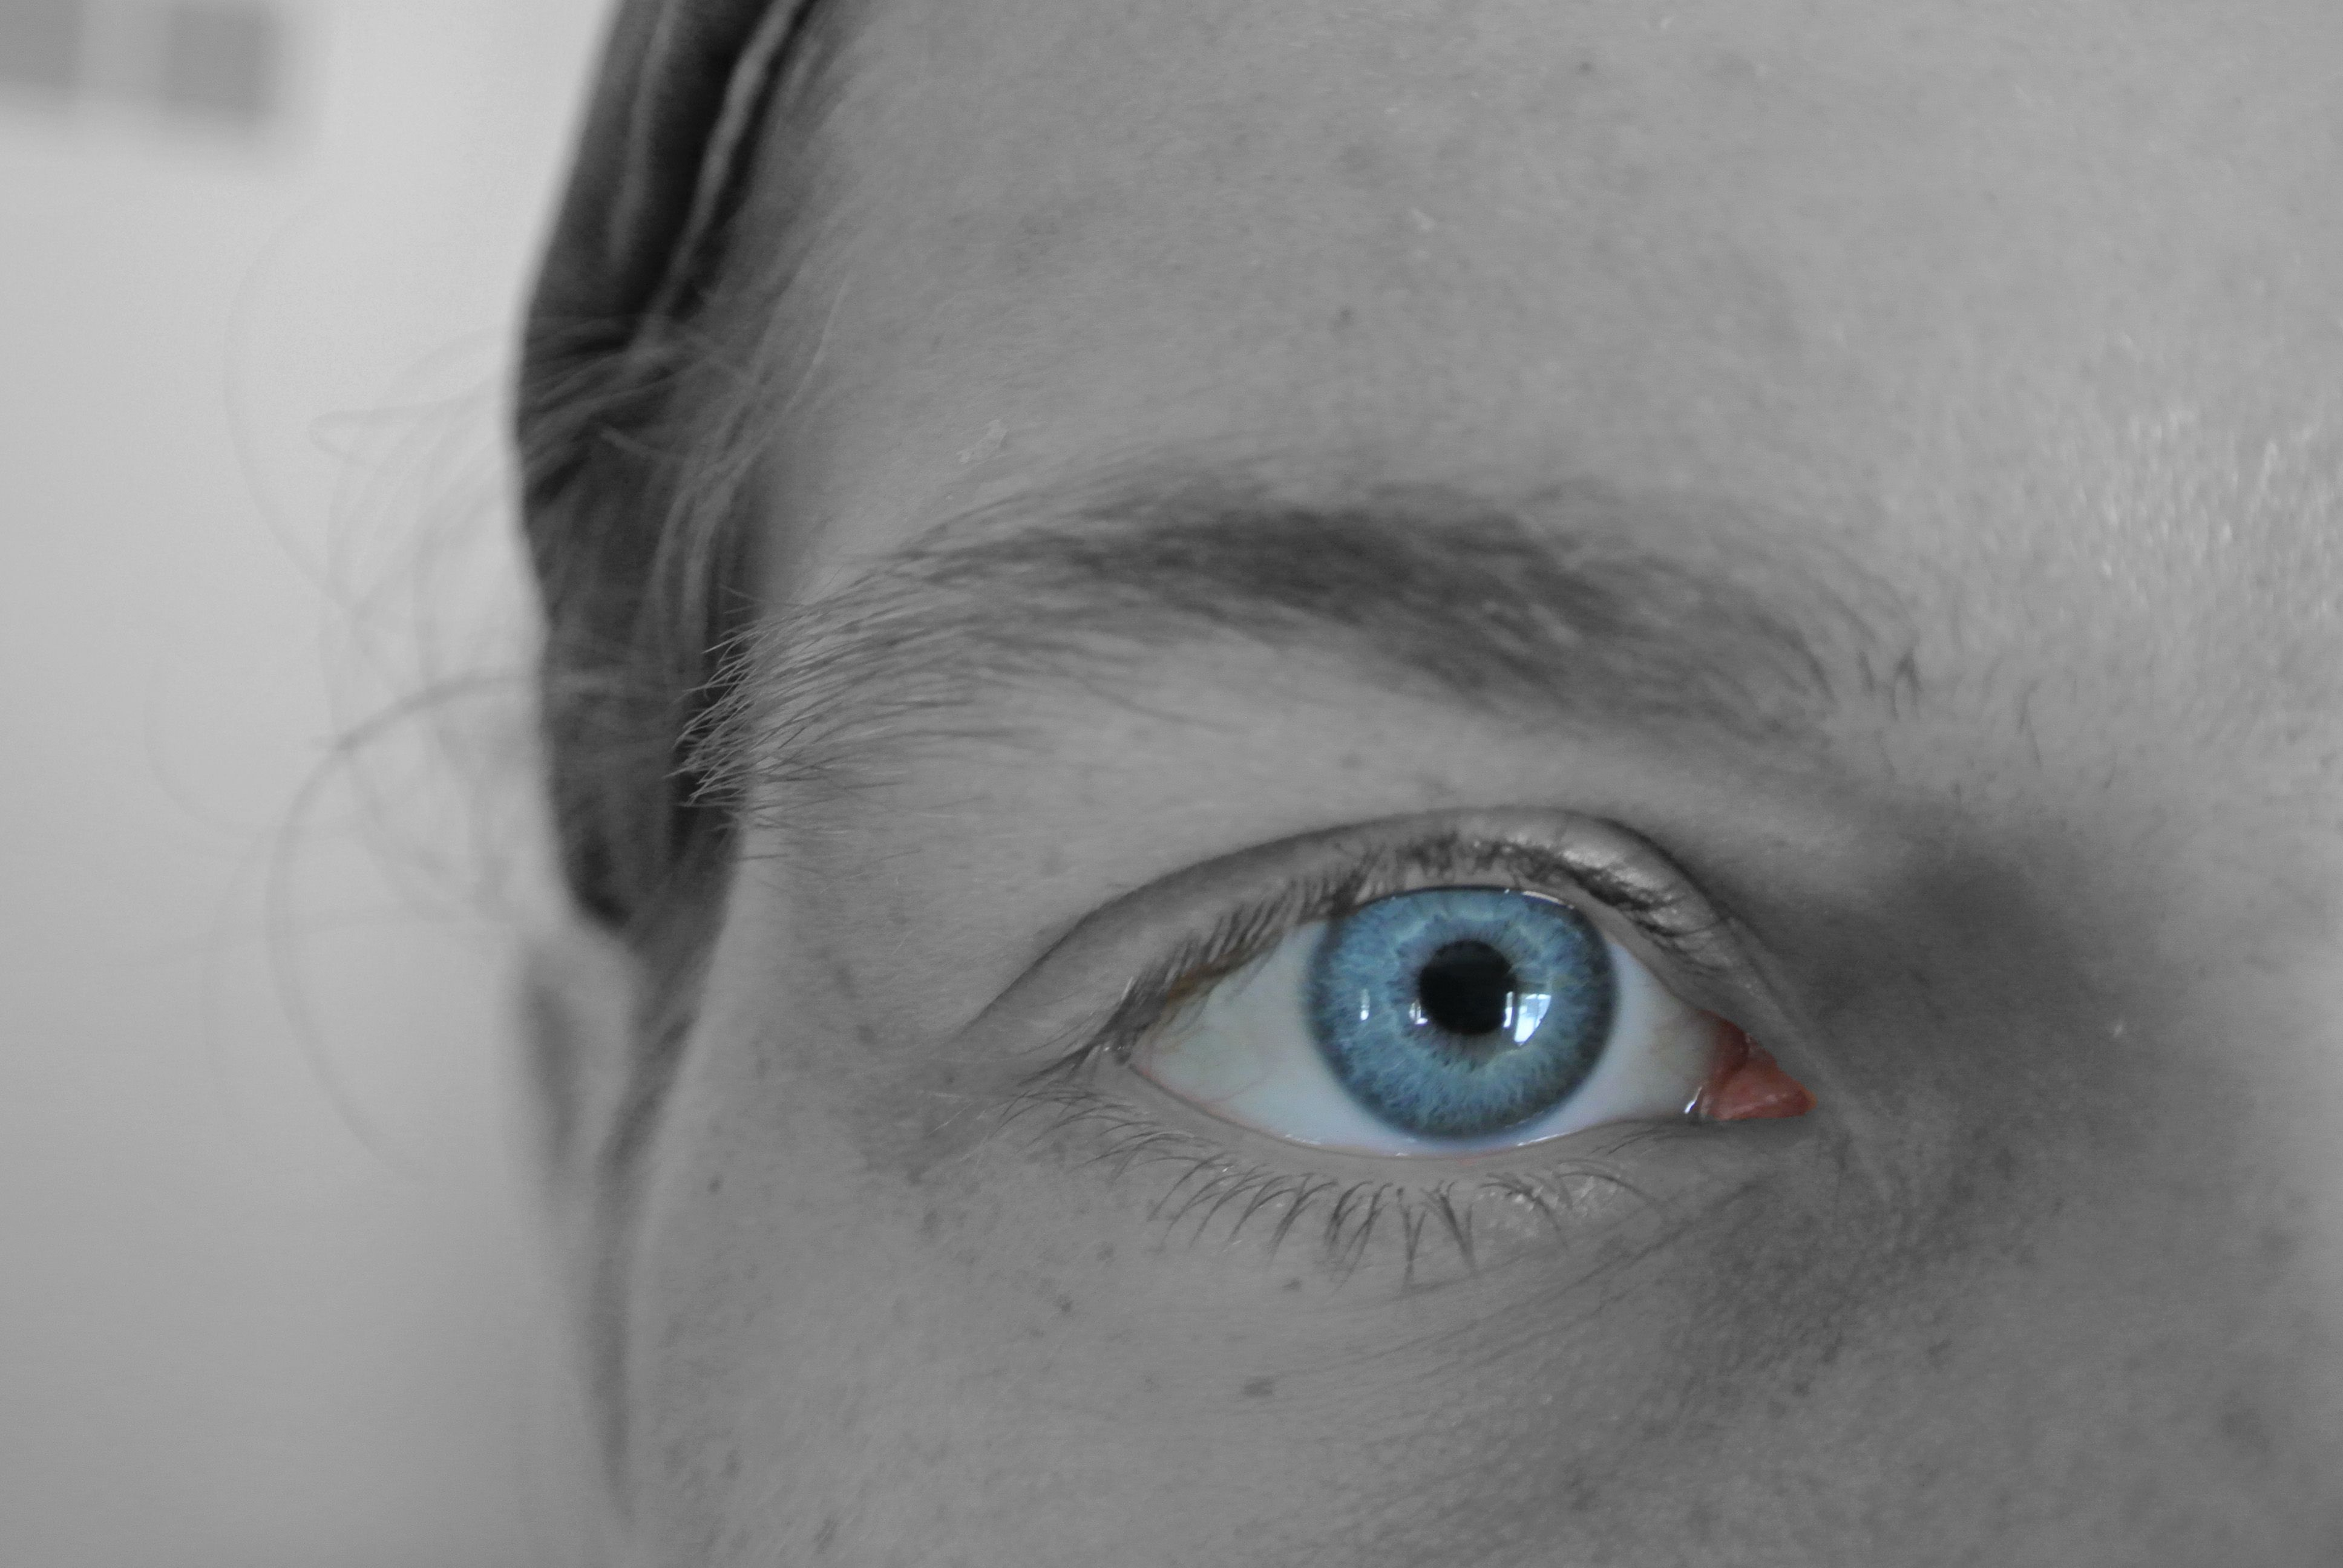 """Submitted by: Kaylee Phillips  Category: Photography  Mediums: Nikon Digital Camera, Adobe Photoshop CS6  """"Blue"""""""